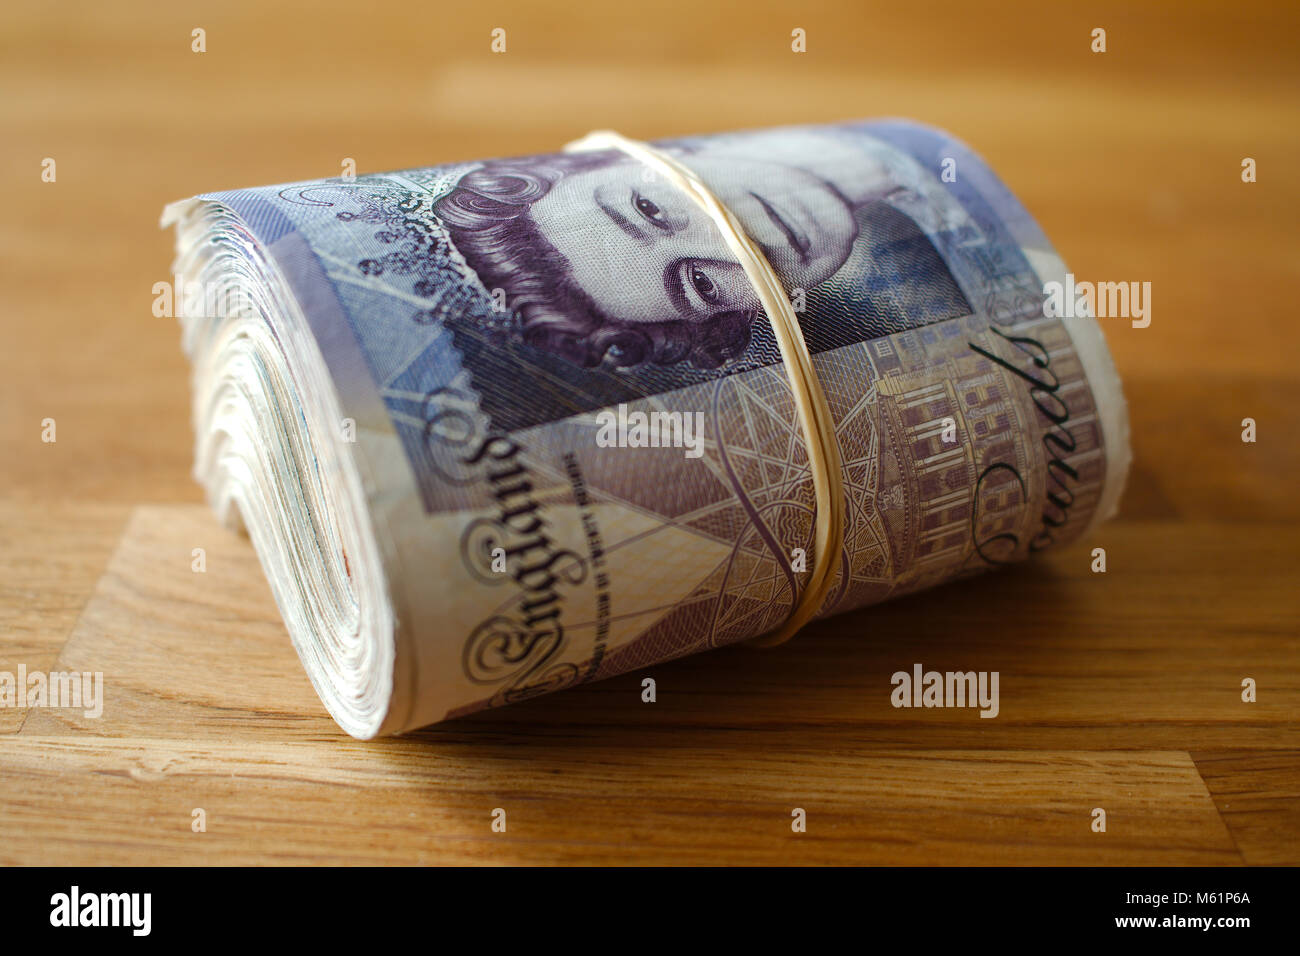 A rolled up bunch of bank notes, giving the impression of wealth. Stock Photo